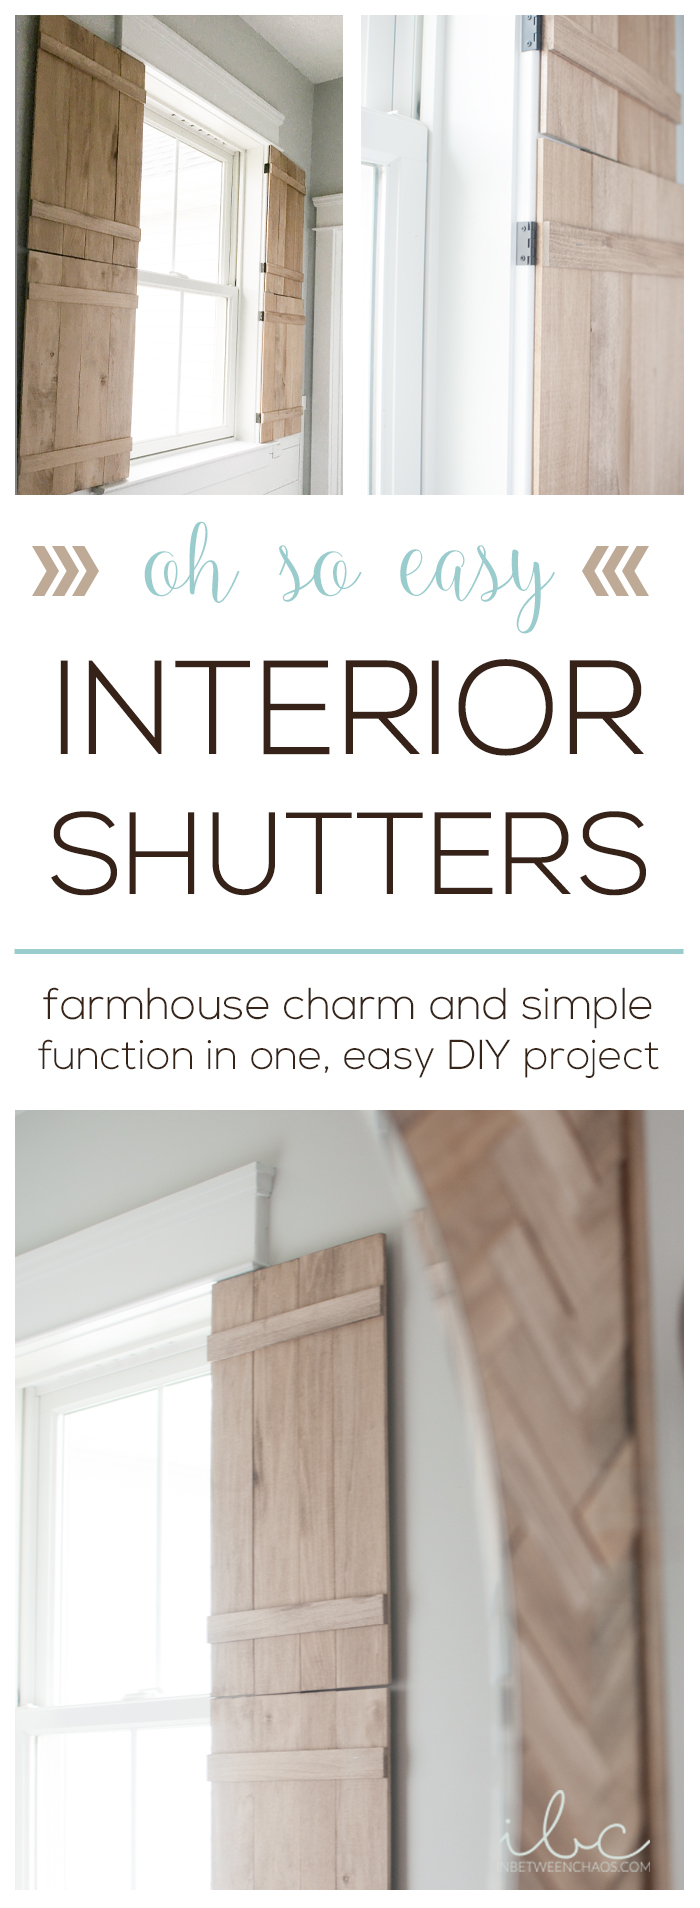 DIY Interior Shutters | inbetweenchaos.com